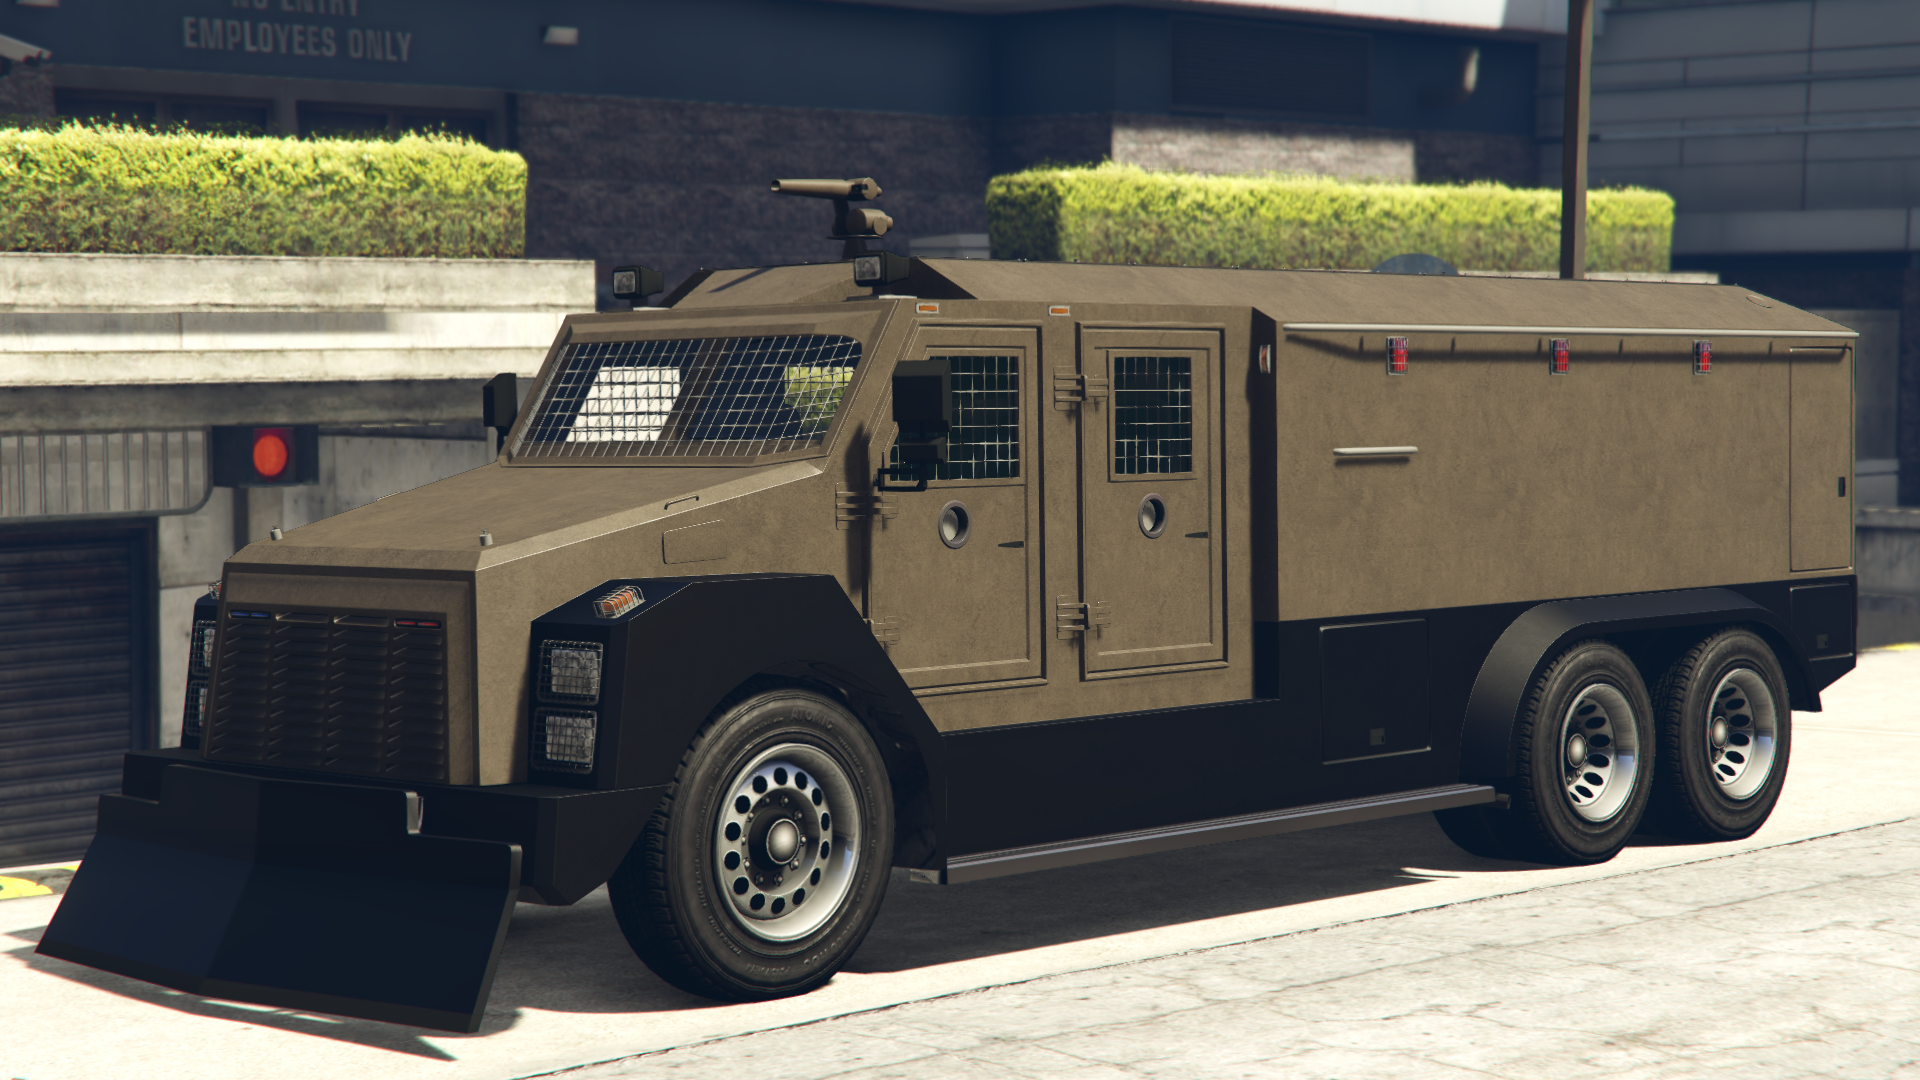 22fbc269c0f4574498e4a639e9011563 - How To Get A Armored Truck In Gta 5